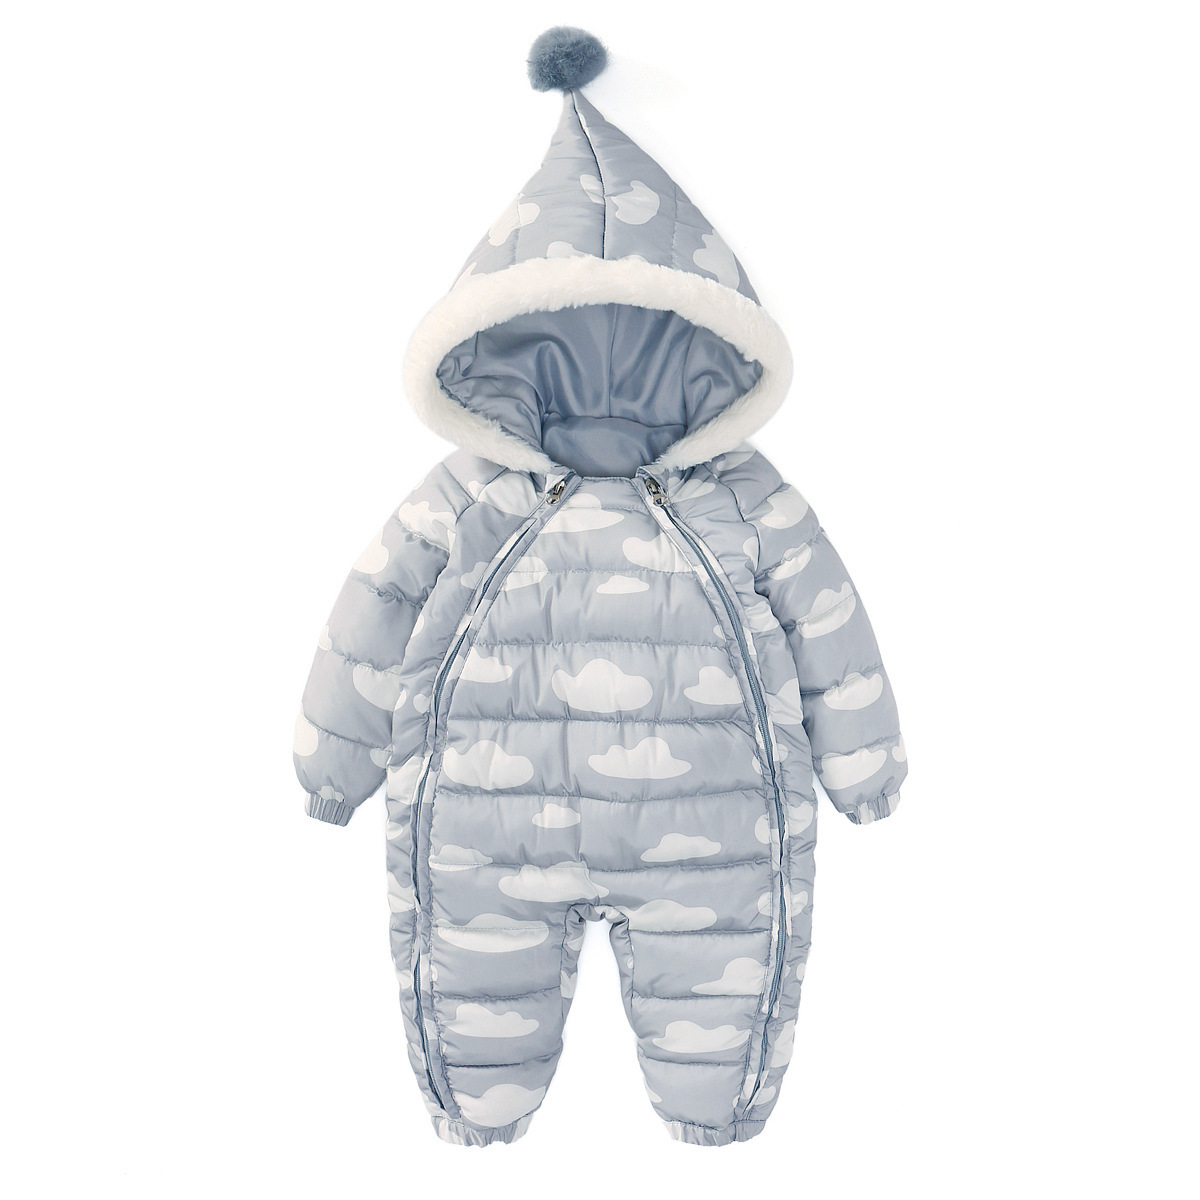 winter Cotton Clothes Children jacket Baby clothing snowsuit girl boy infant snow Winter jumpsuit coat Thickening Warm casual 4t 14t children s clothing pants leggings warm three layers plus plush thickening cotton baby girl clothes winter children